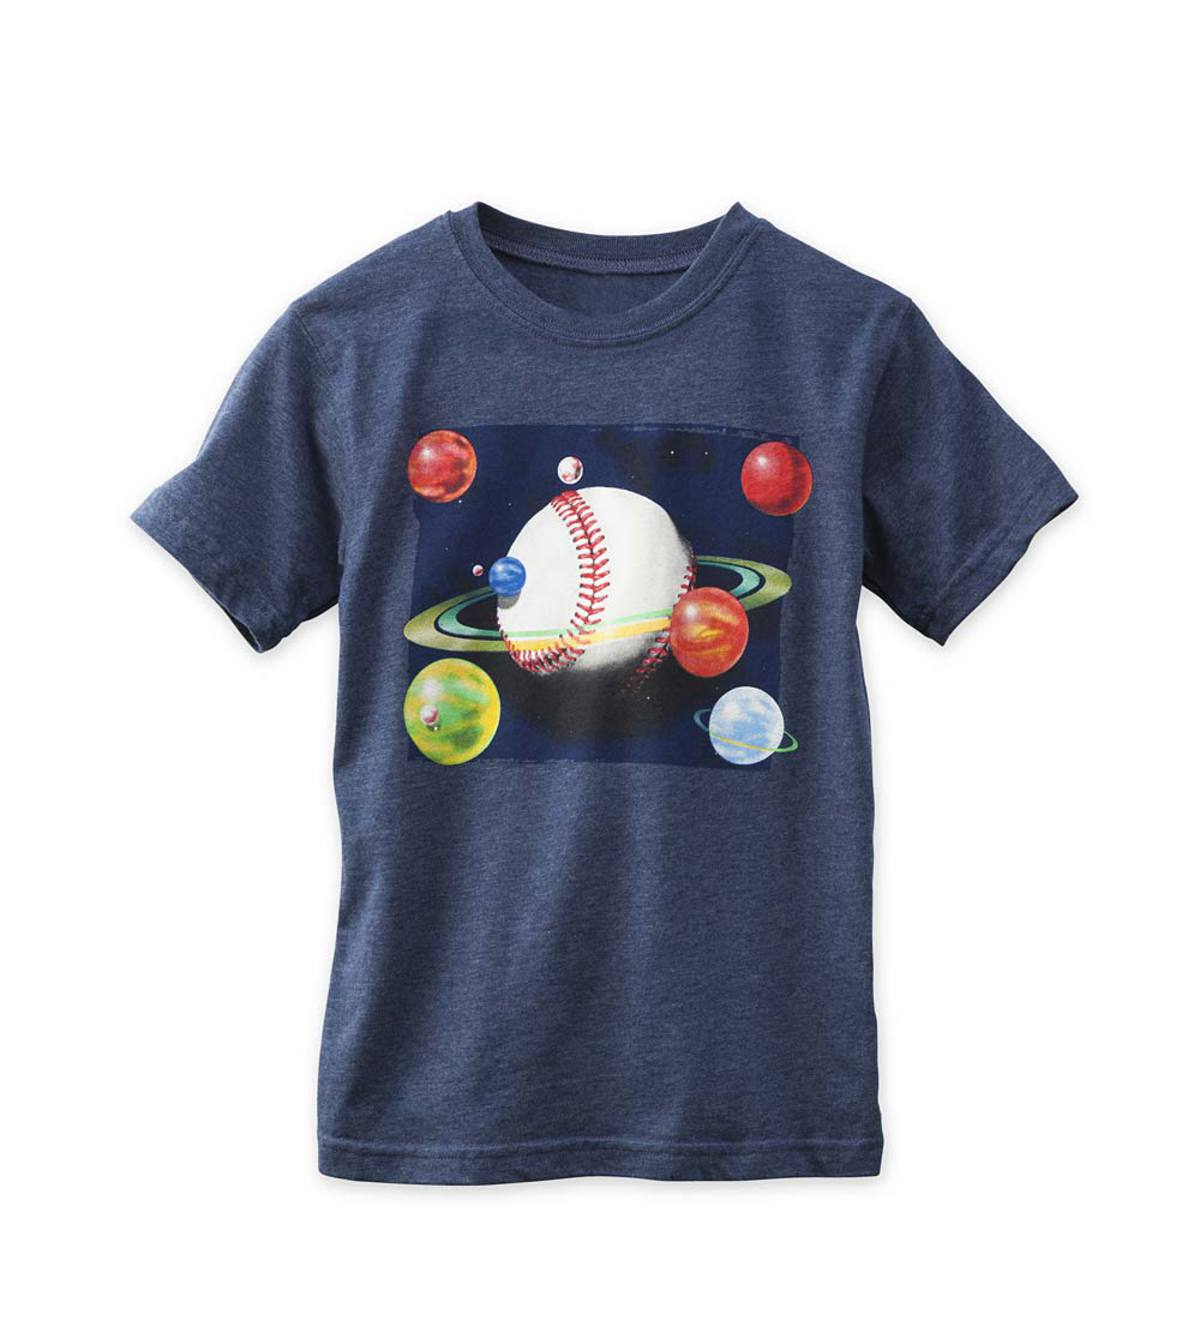 Short Sleeve Baseball Space Graphic Tee - Navy - 4T